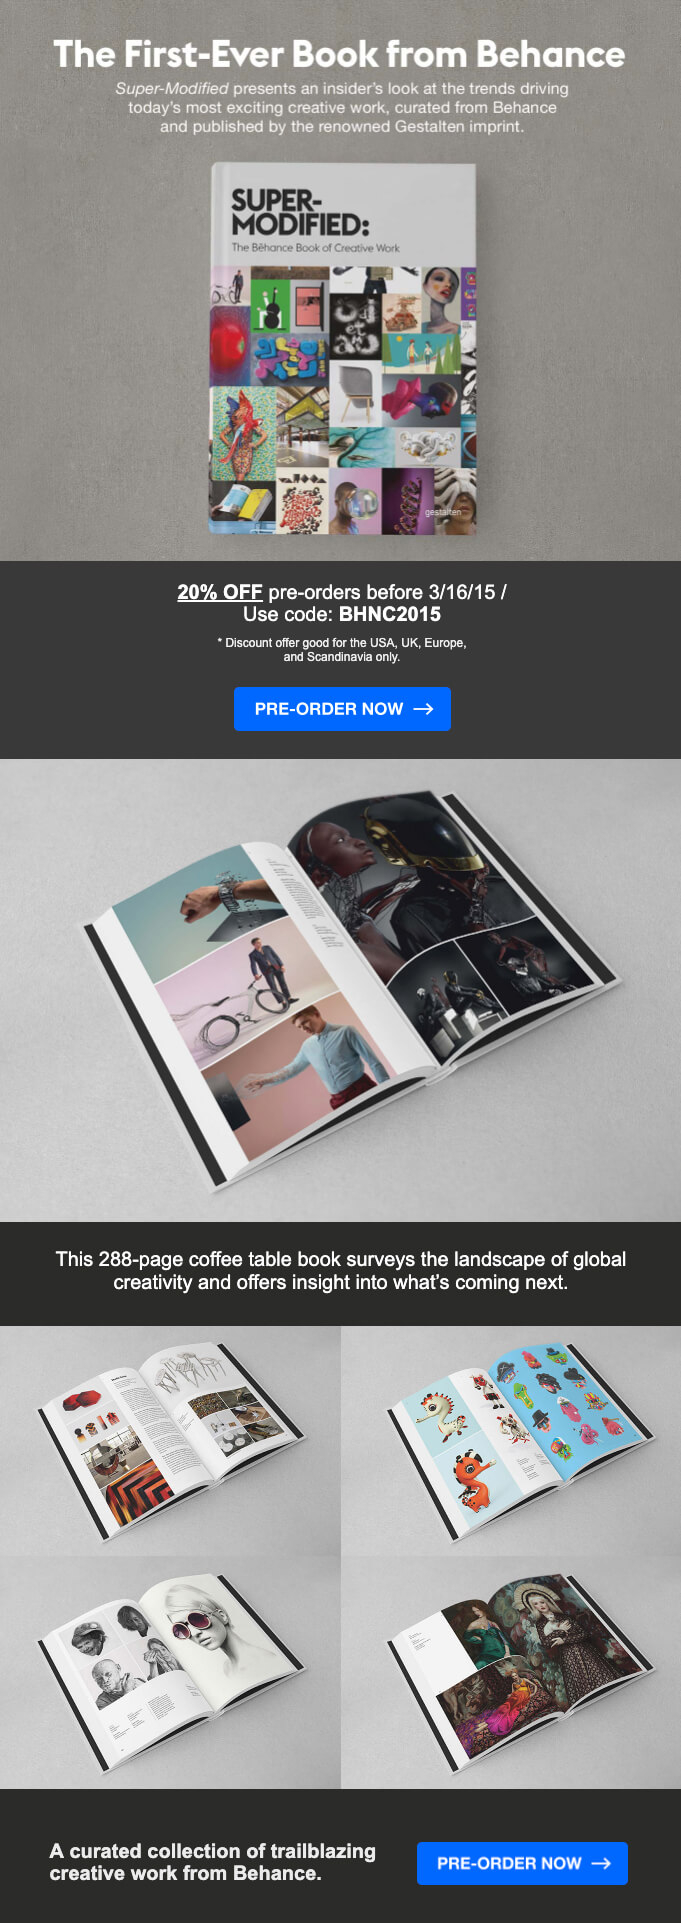 Behance product launch announcement email